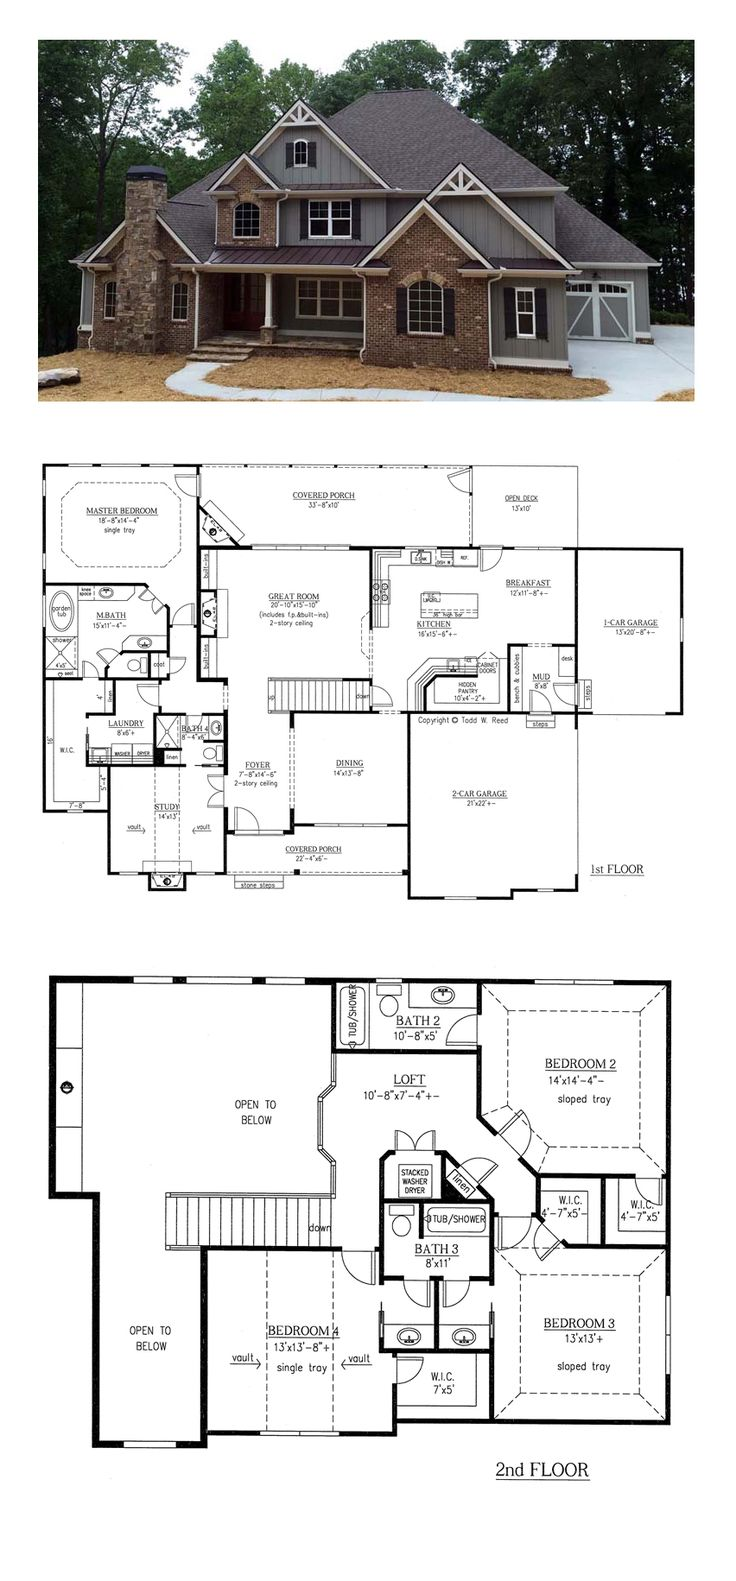 Best 25 house blueprints ideas on pinterest house floor plans nice floor plan maybe close up family room 2 story ceiling and make upper family room or extra bedroom upstairs french country house plan 50263 malvernweather